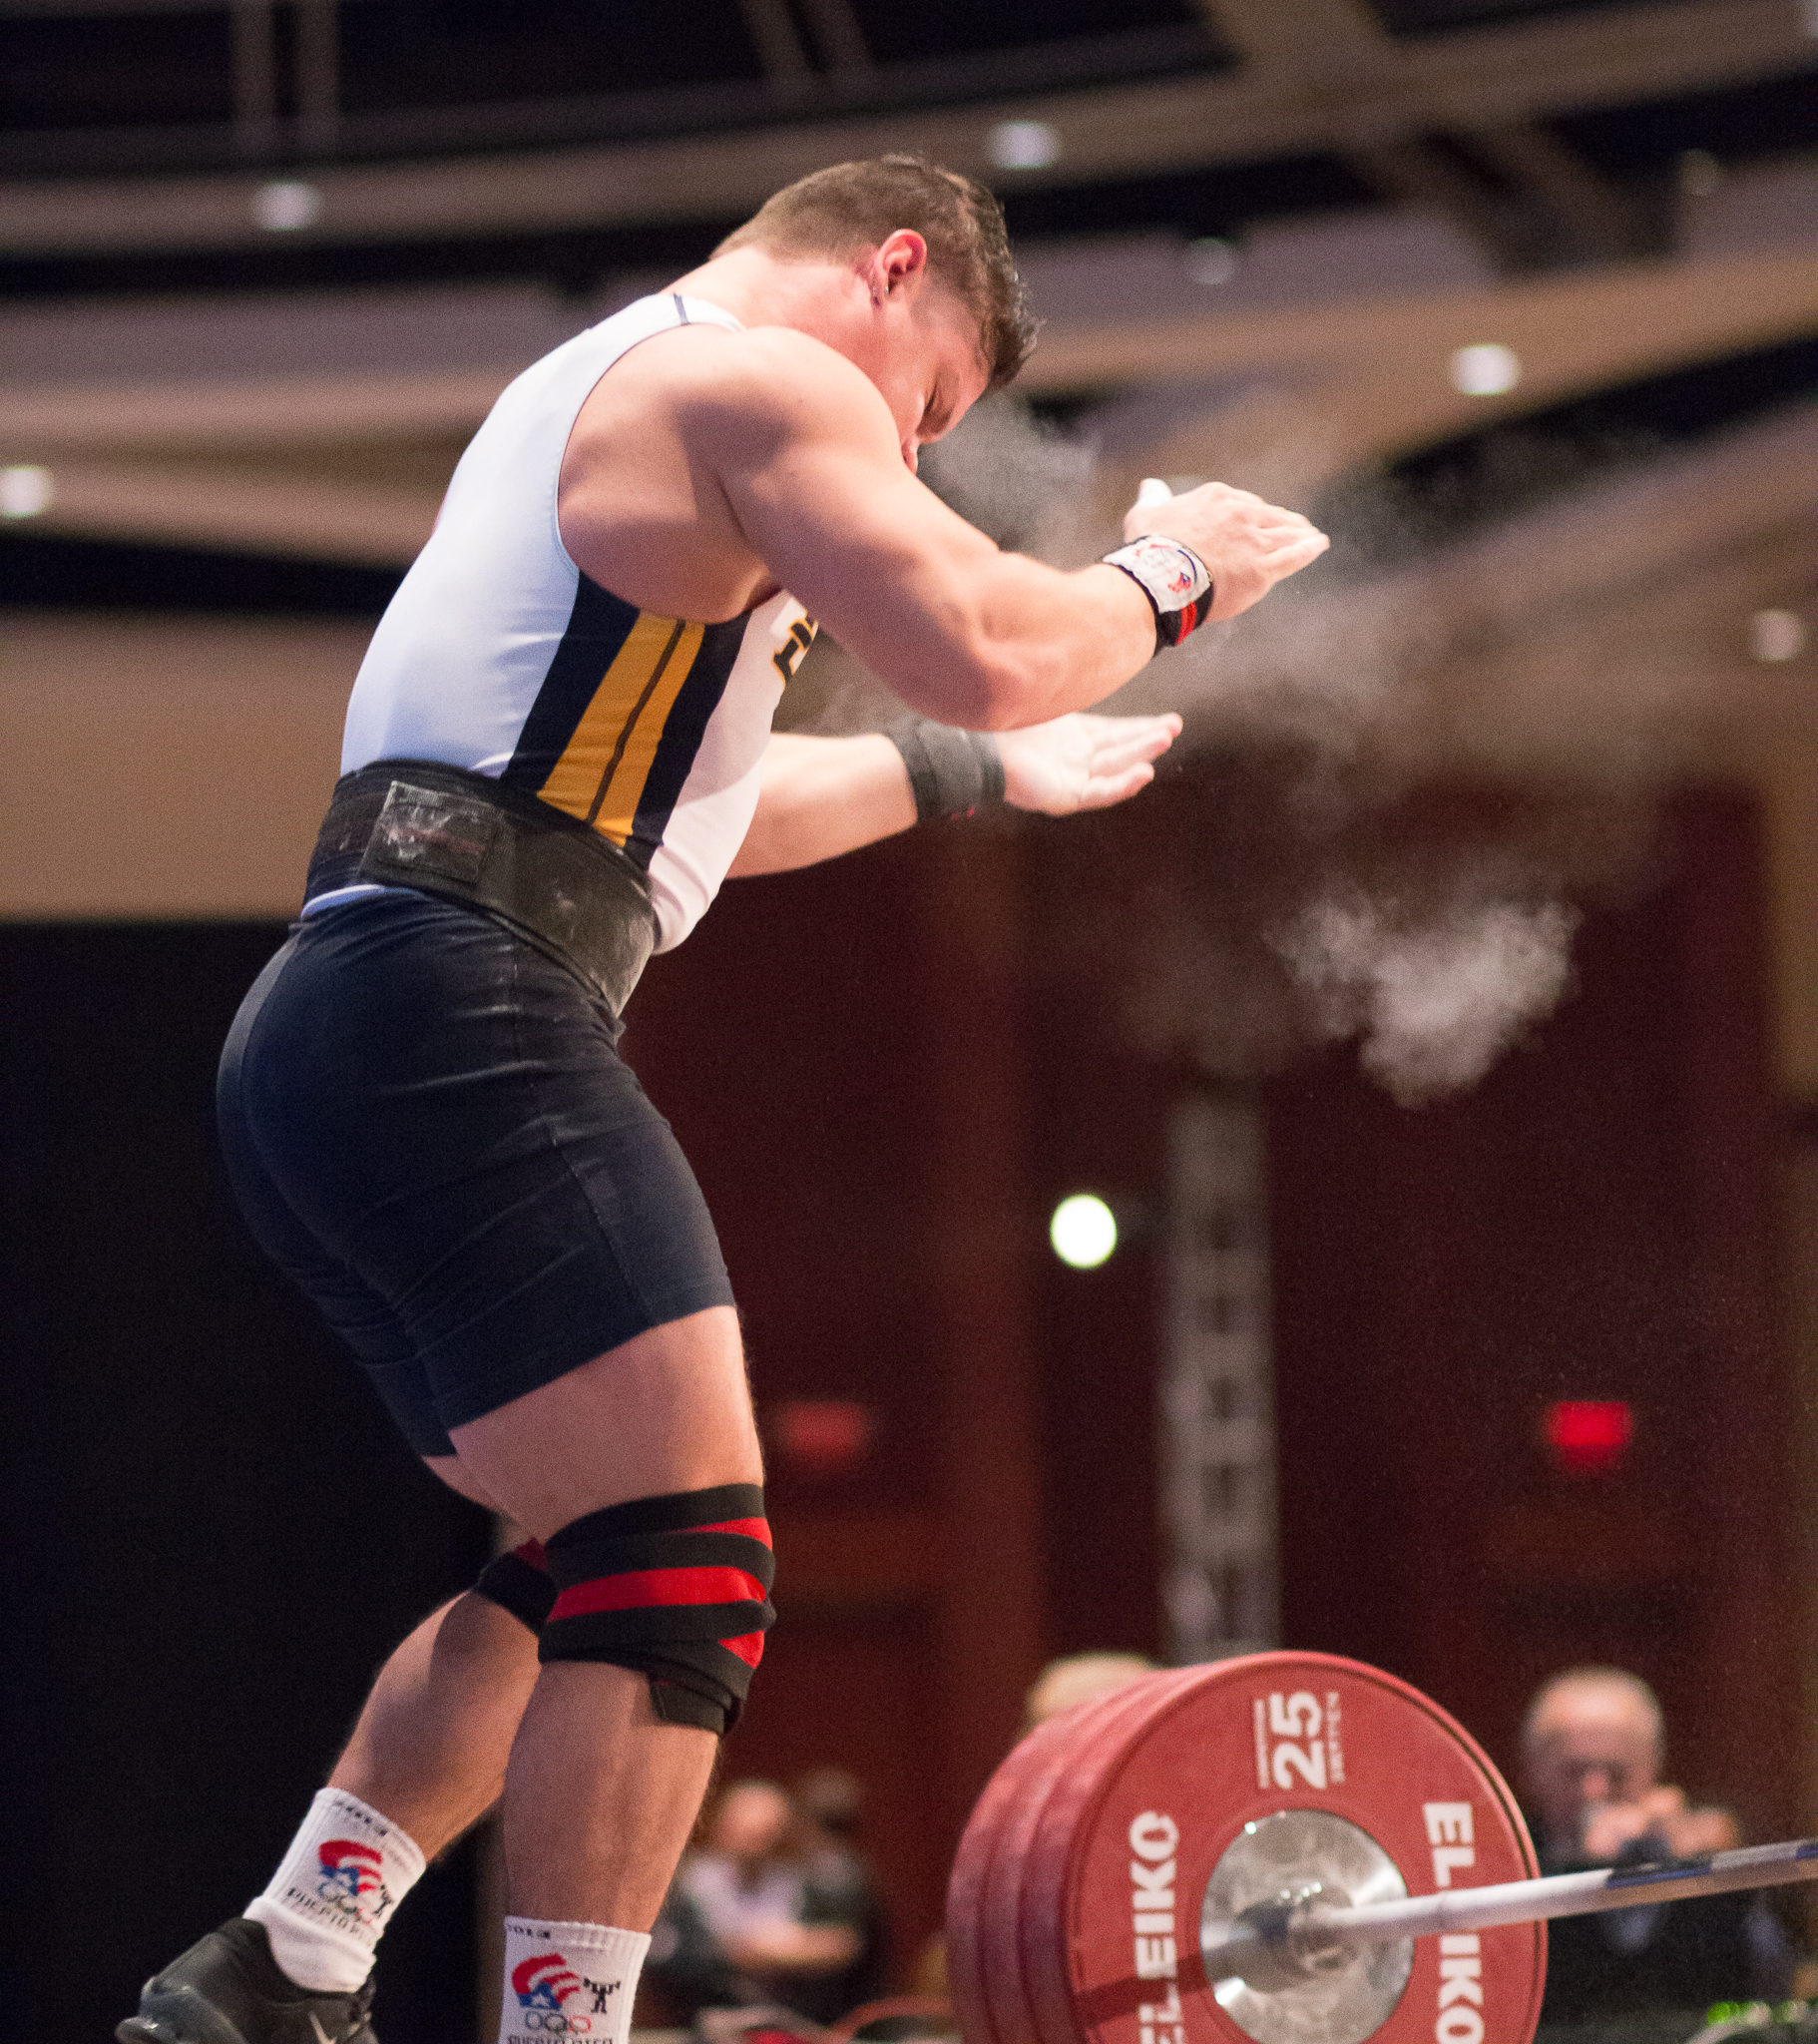 session-a-favorites-american-open-2016-weightlifting-photography (34 of 38).jpg